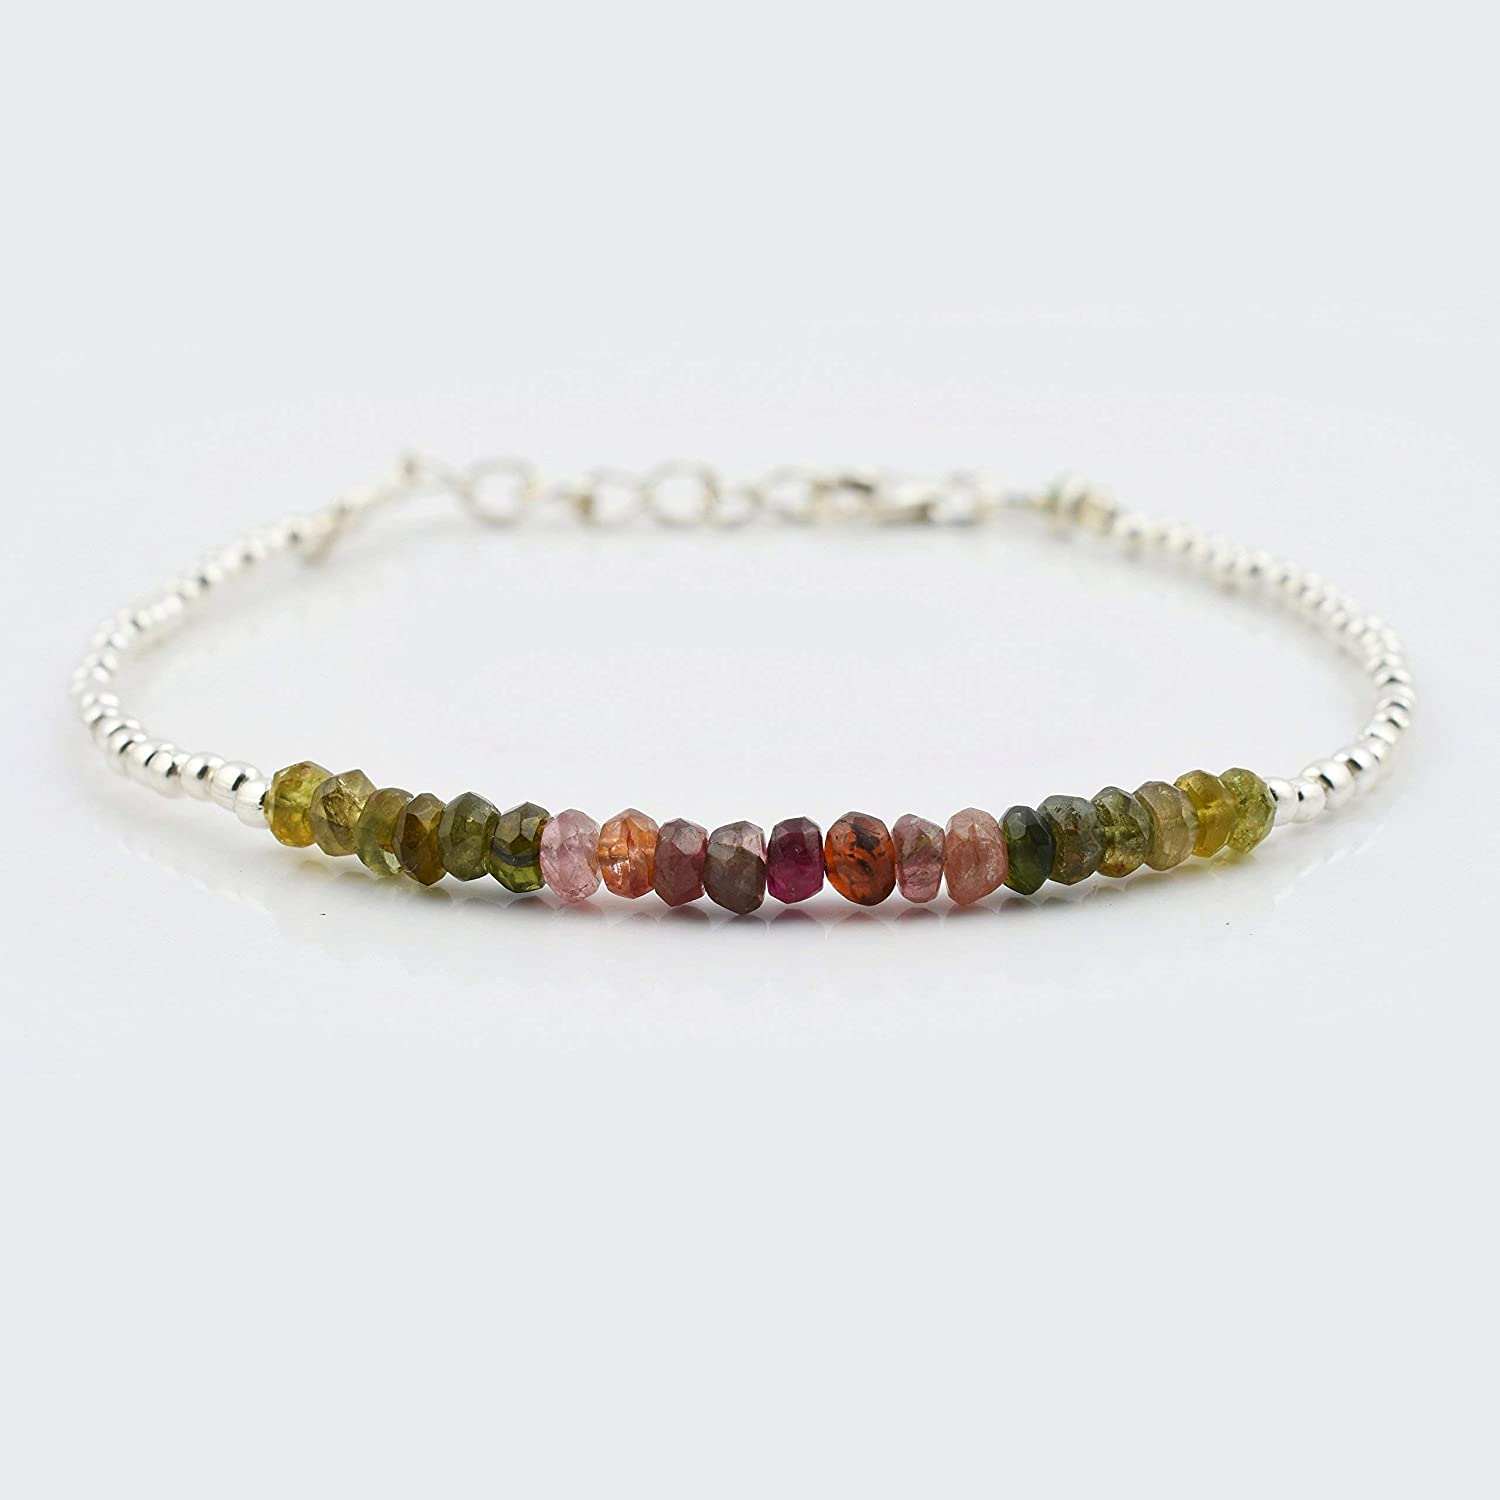 Watermelon Tourmaline Rondelle Beads Bar Bracelet with Sterling Silver Findings Birthstone Jewelry